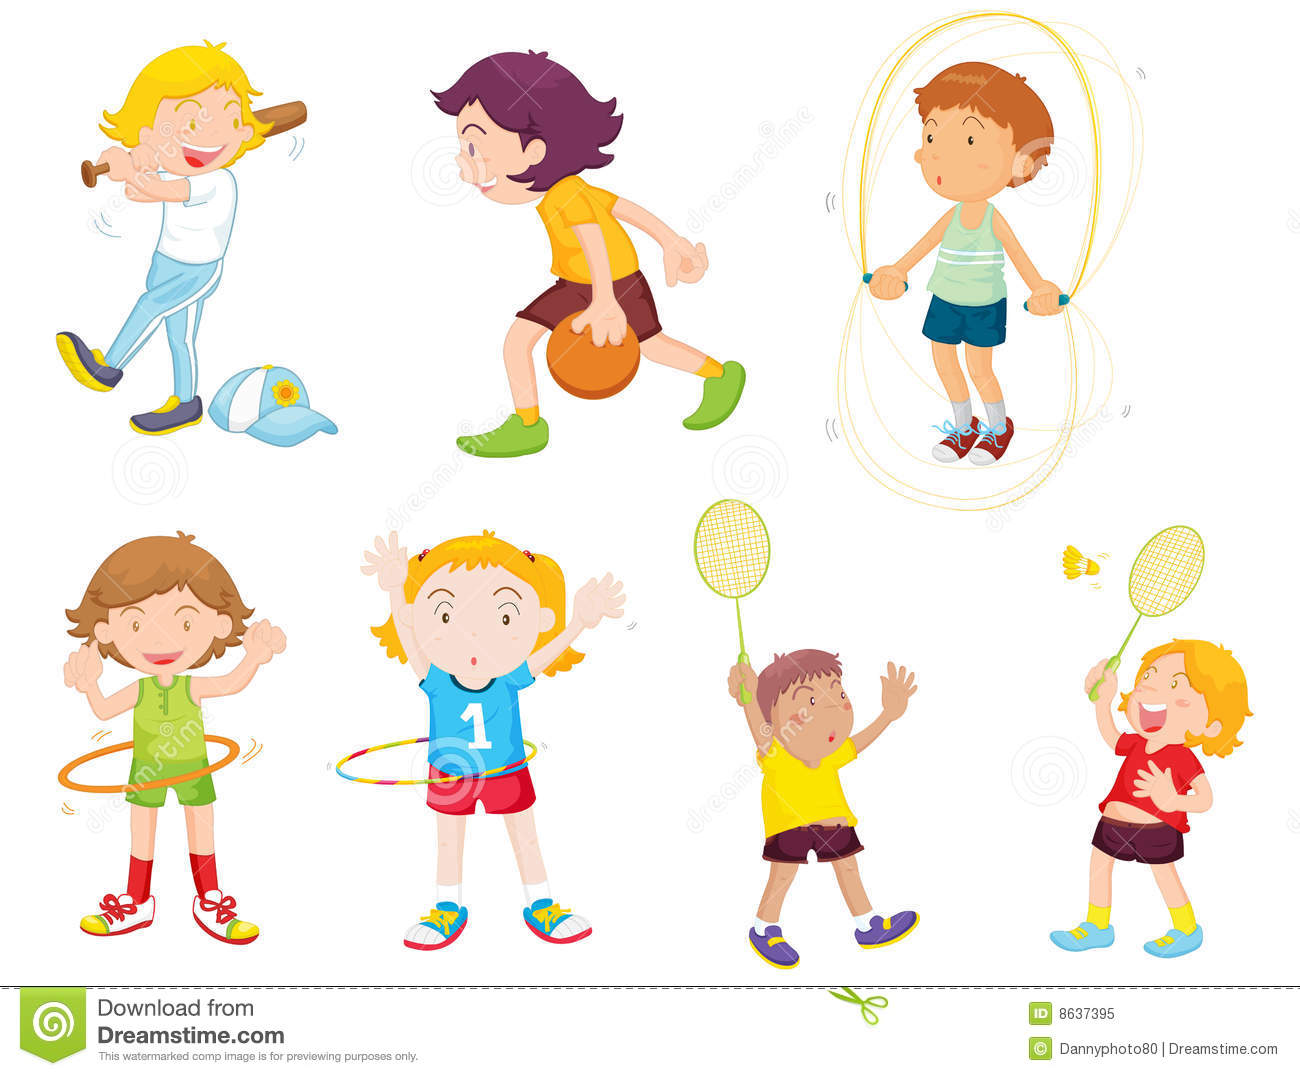 21852 Child free clipart.